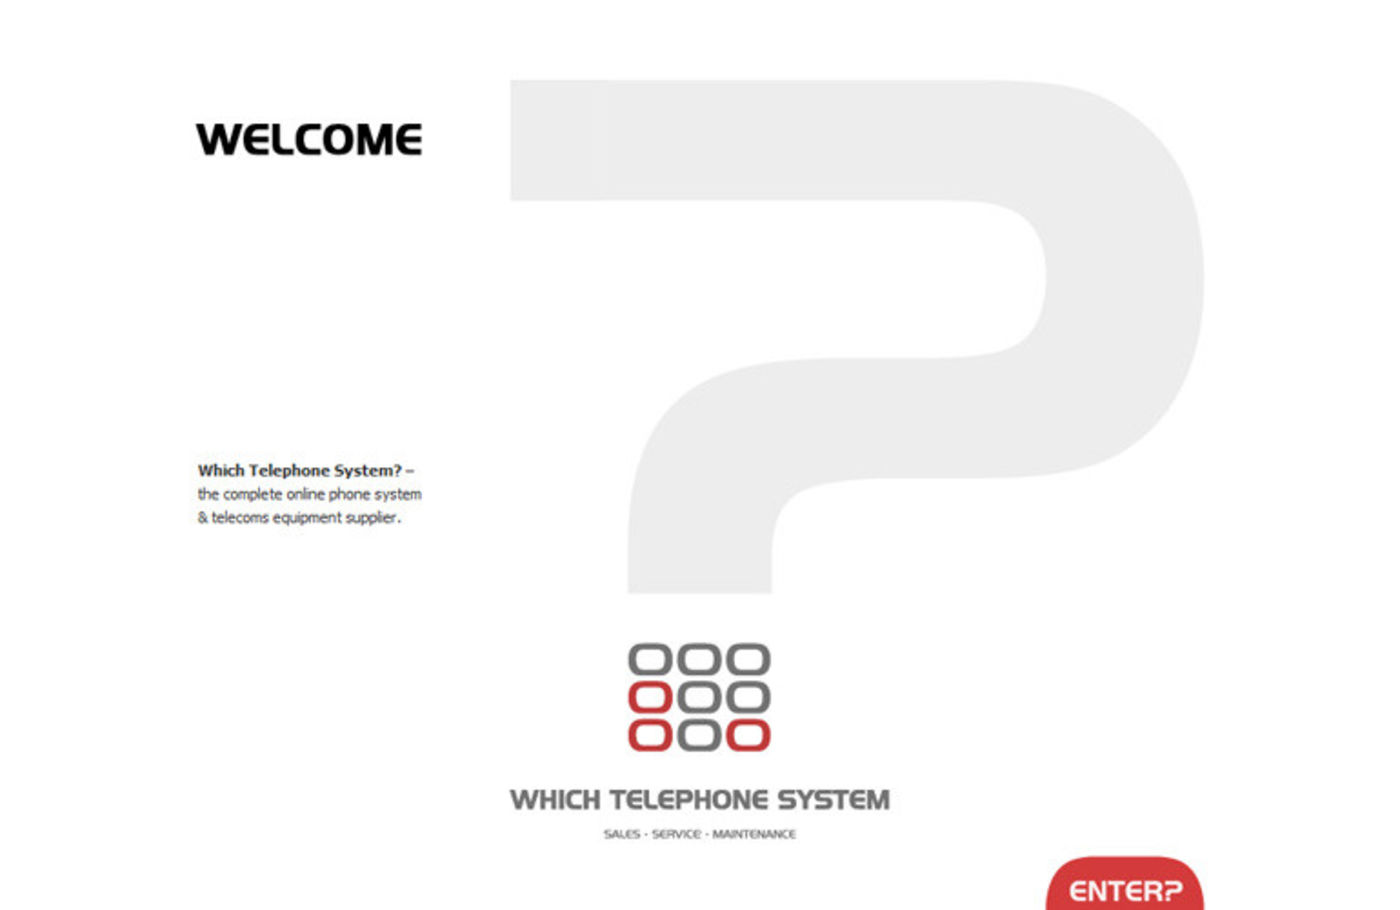 Which Telephone System Welcome